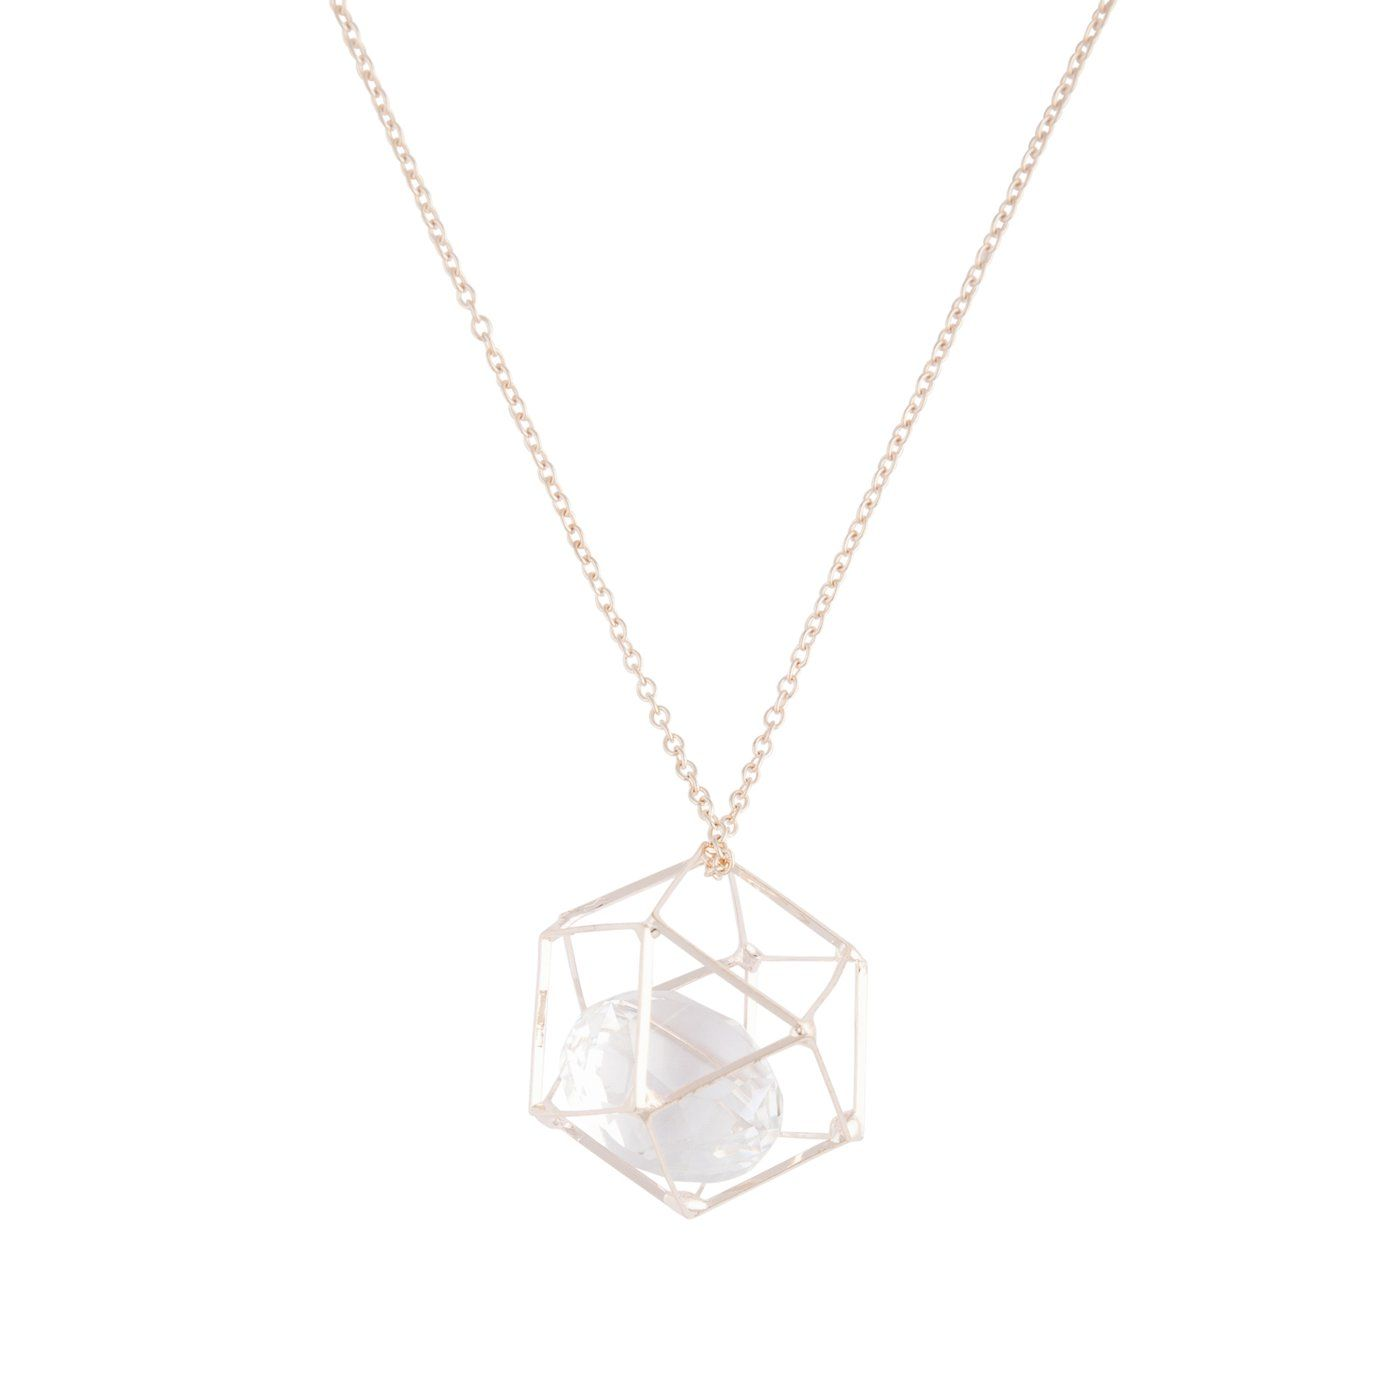 Rose Gold Station Cube Short Necklace Gold Jewelry Gift Rose Gold Chain Necklace Girlfriend Jewelry Gift